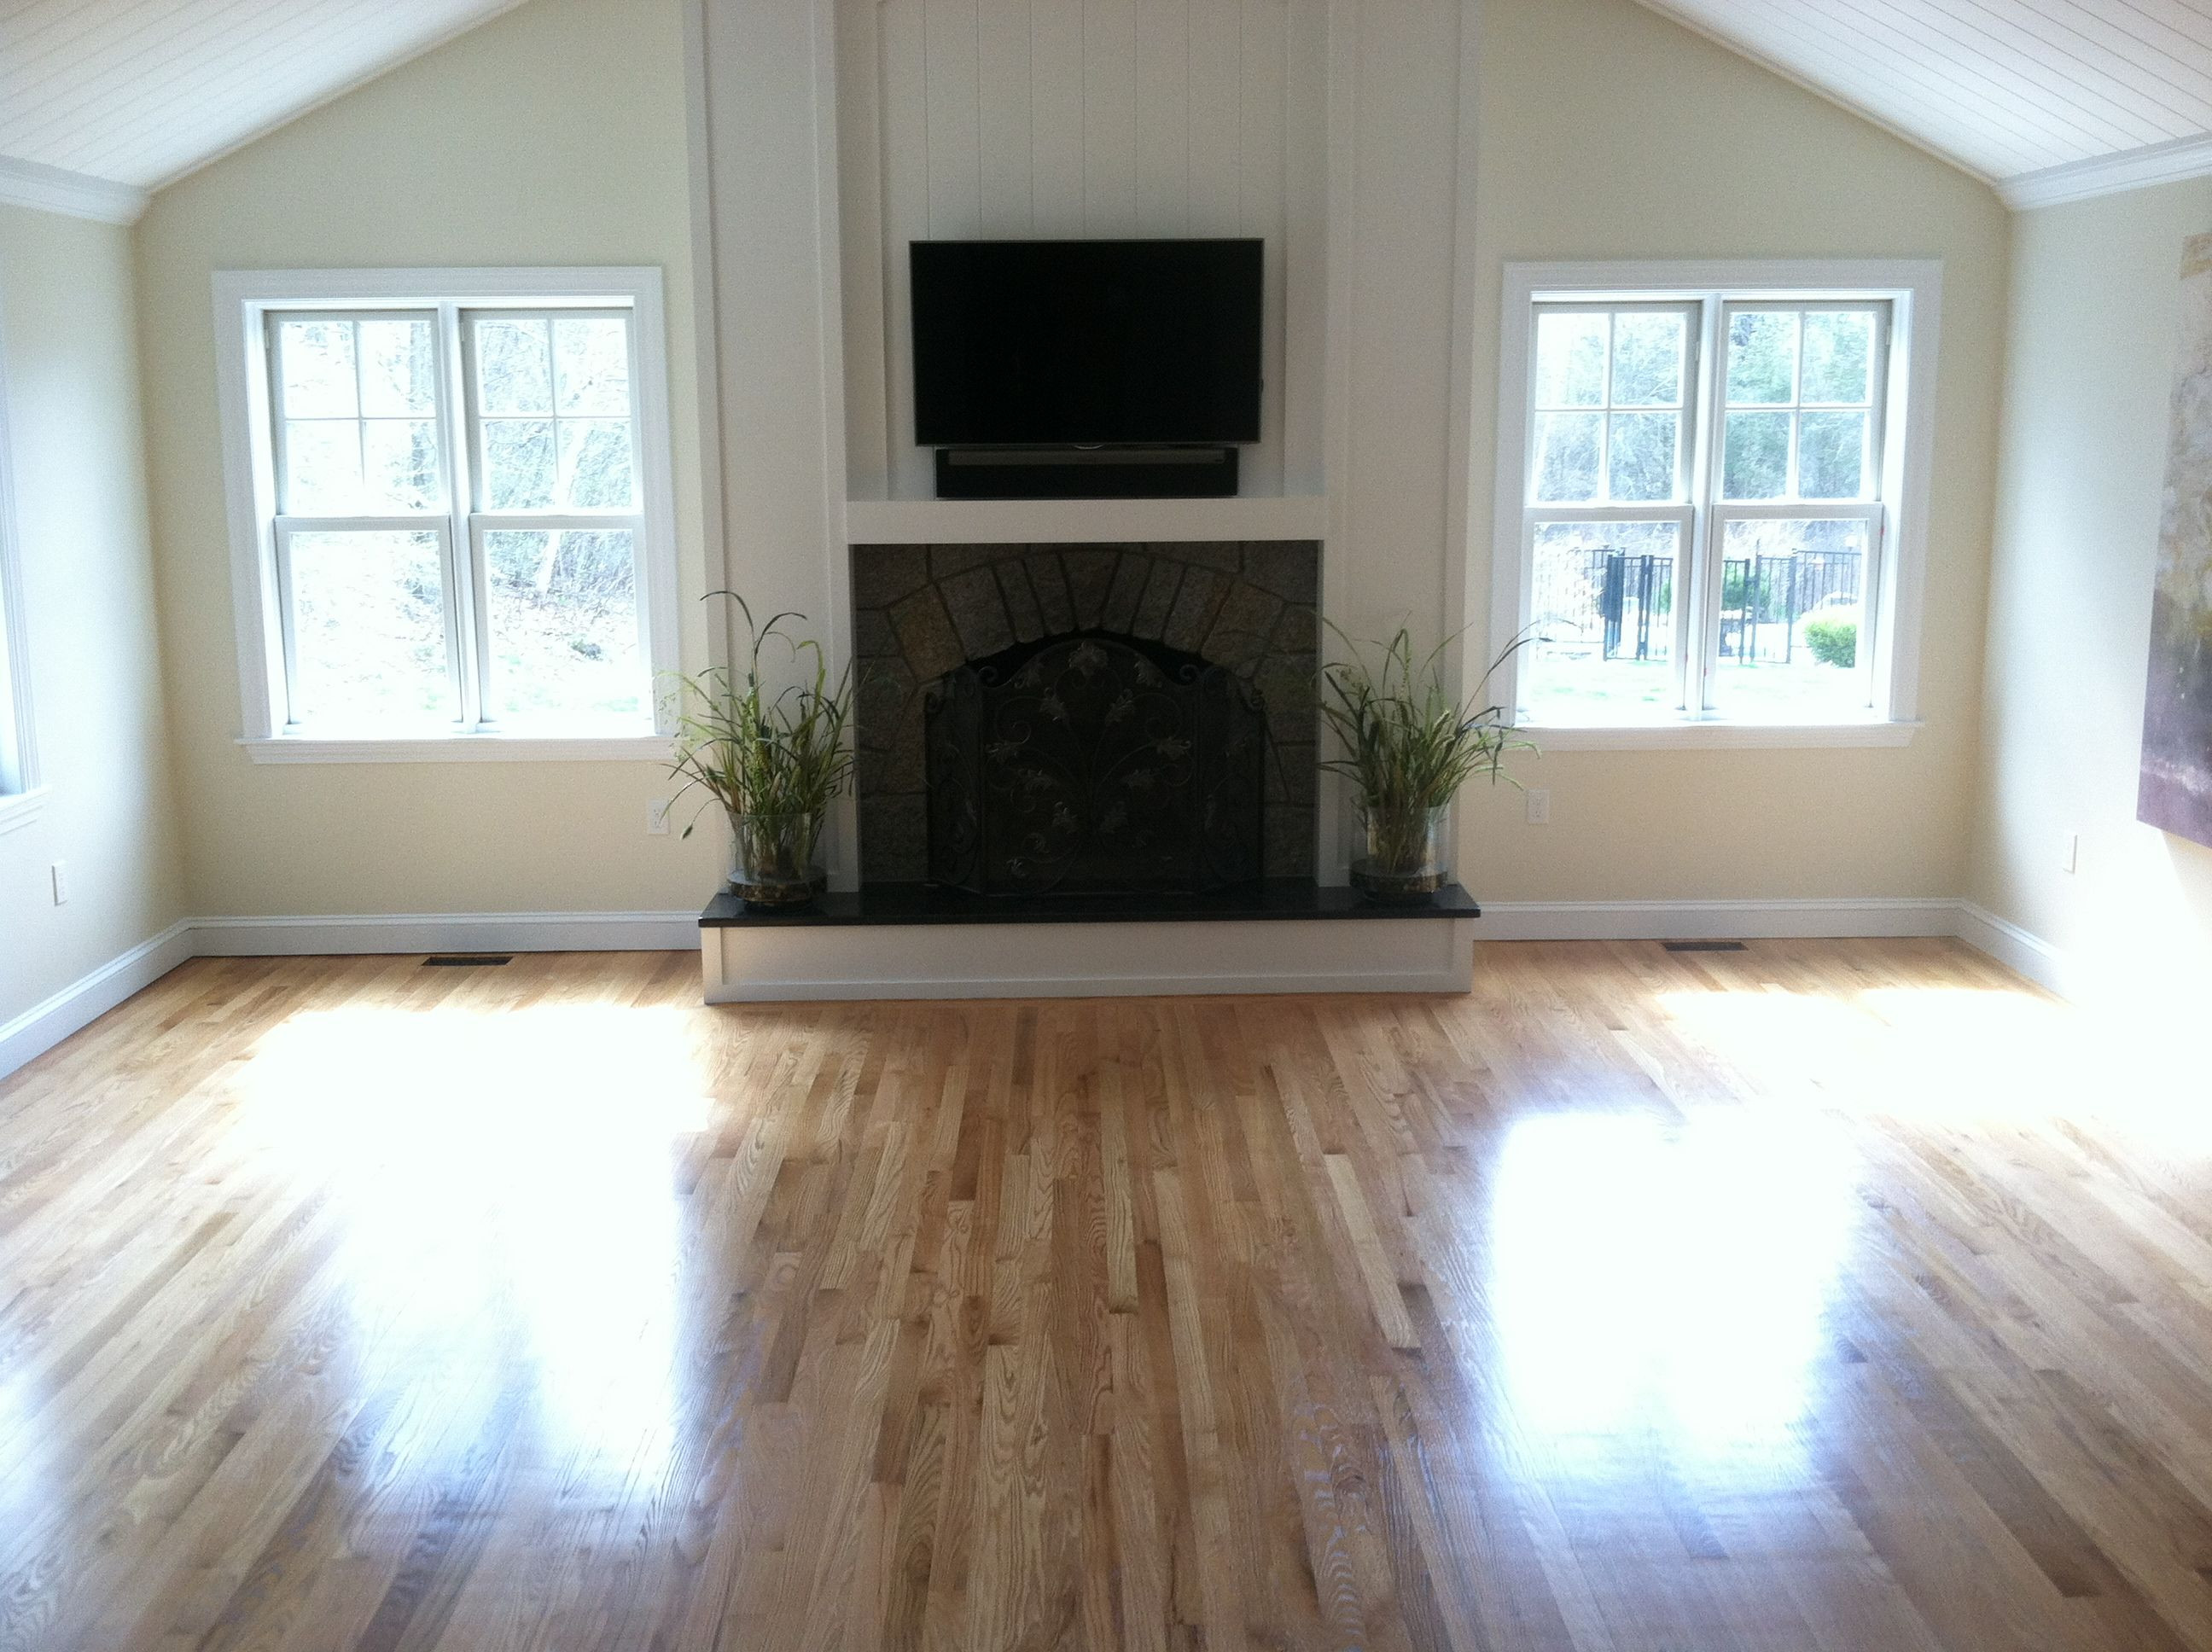 red oak hardwood flooring matte finish of select and better red oak flooring with 3 coats of bona woodline for select and better red oak flooring with 3 coats of bona woodline polyurethane semigloss floor finish